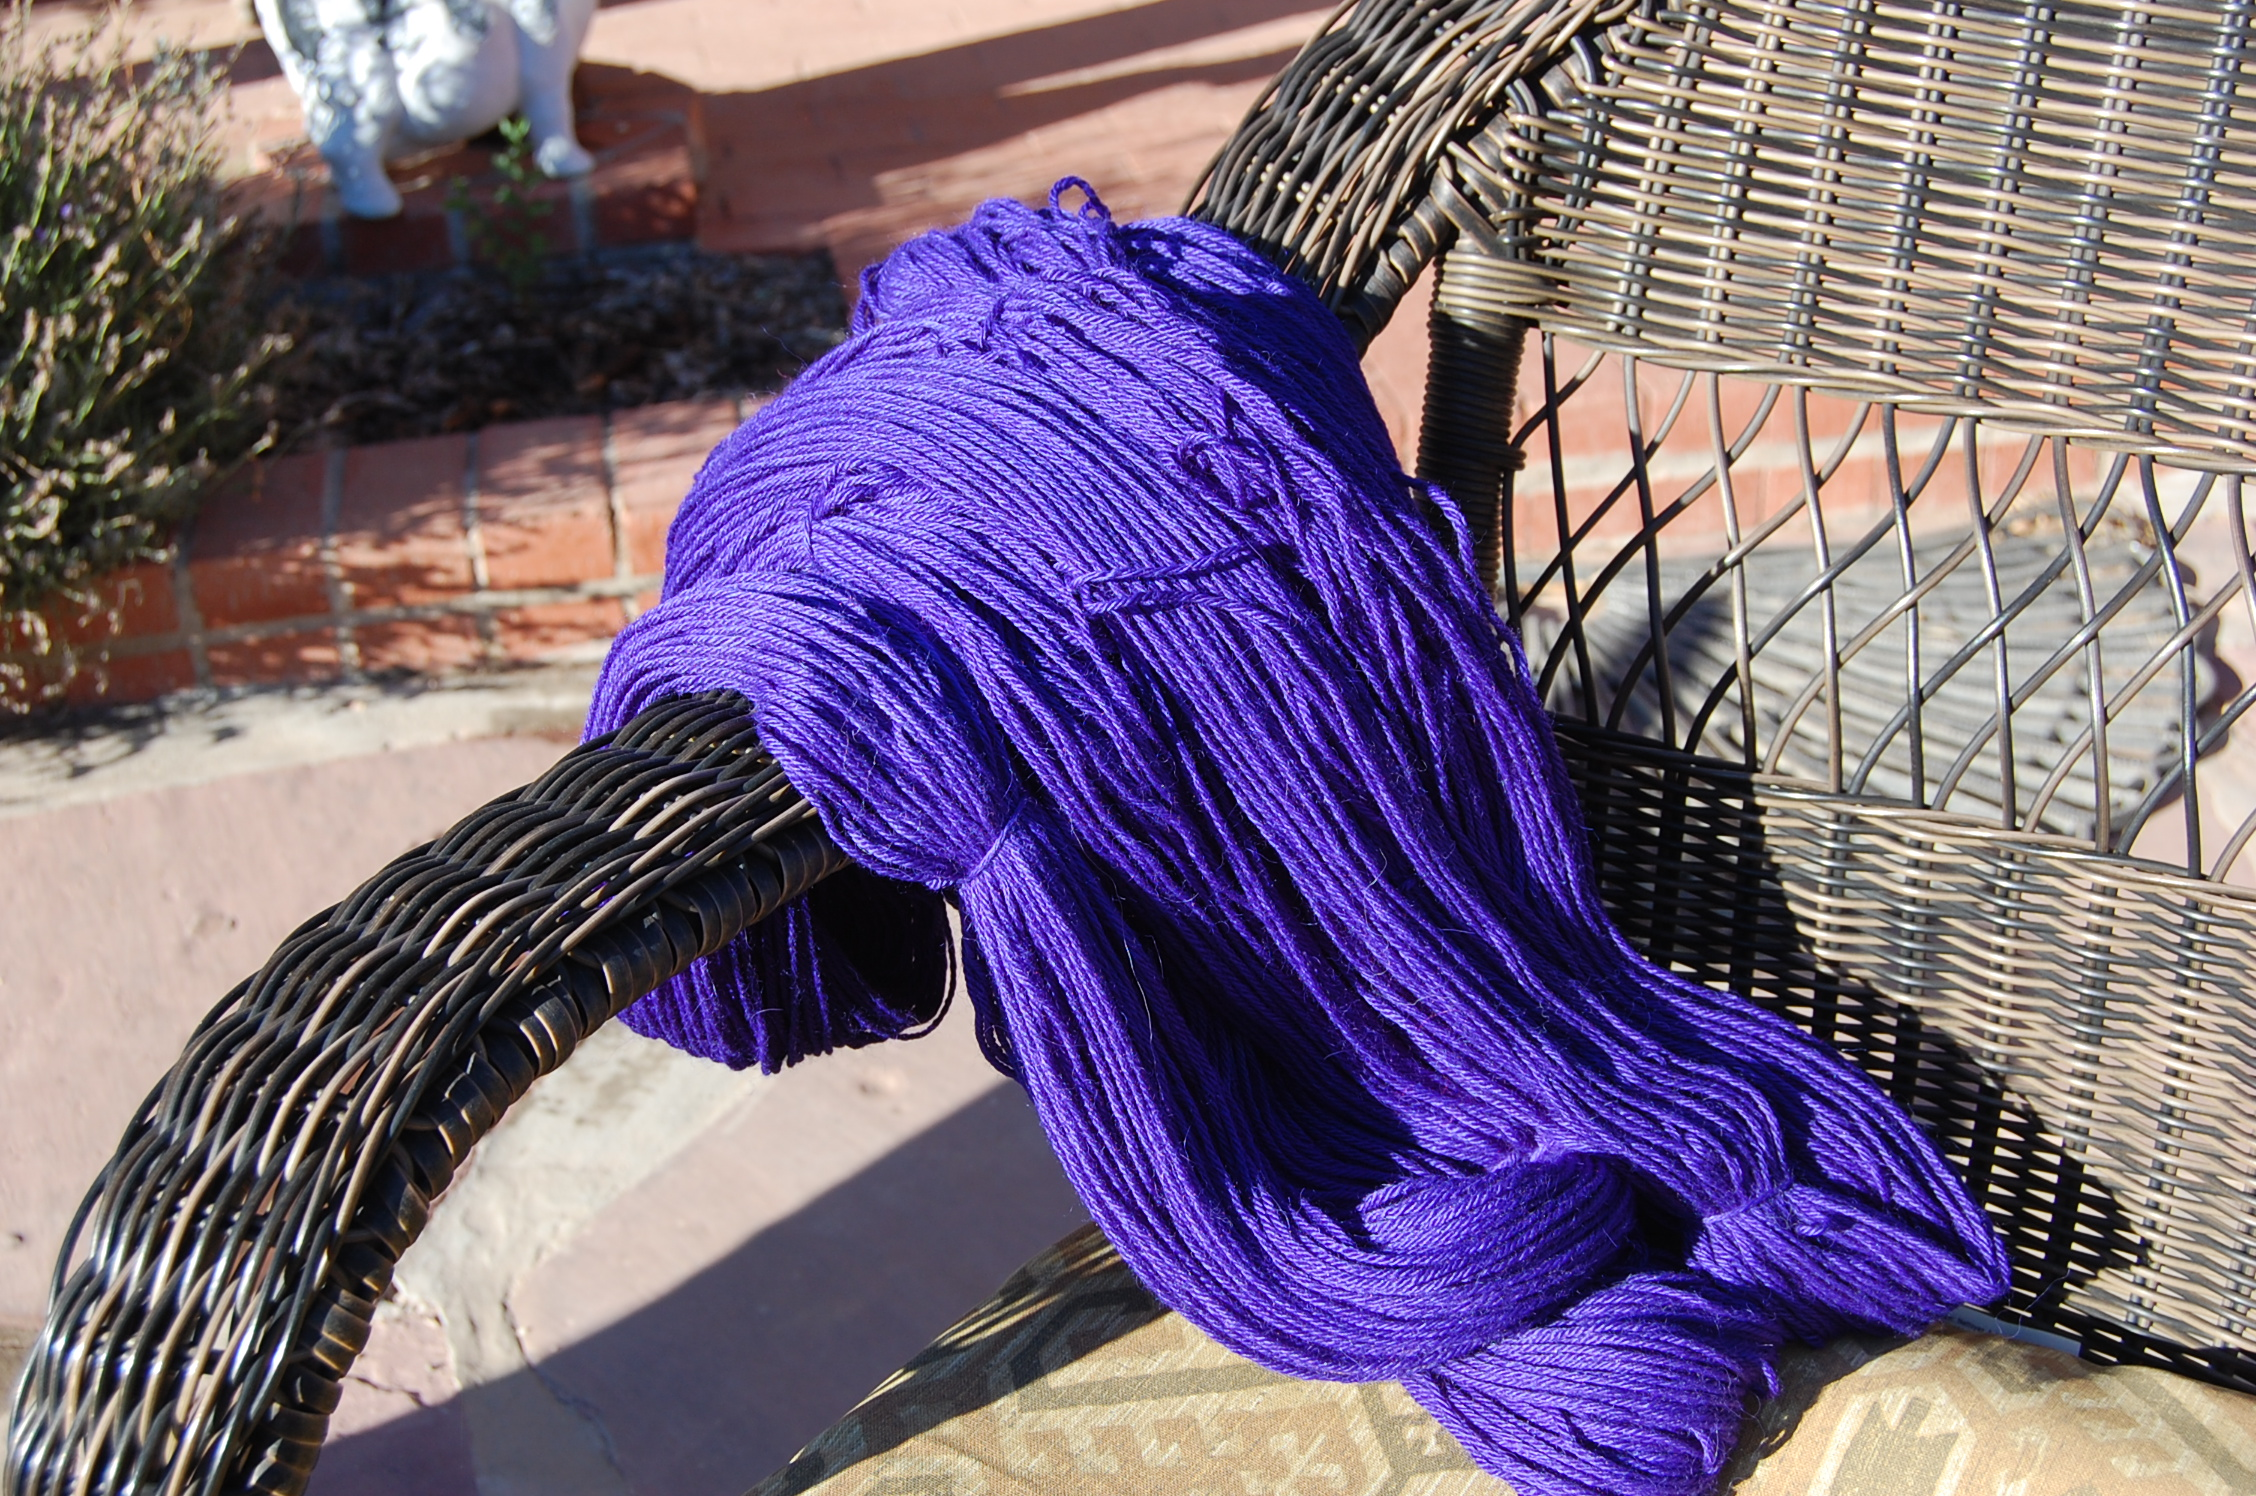 Beautiful hand dyed periwinkle yarn  by Miss Stacie here at the ranch...